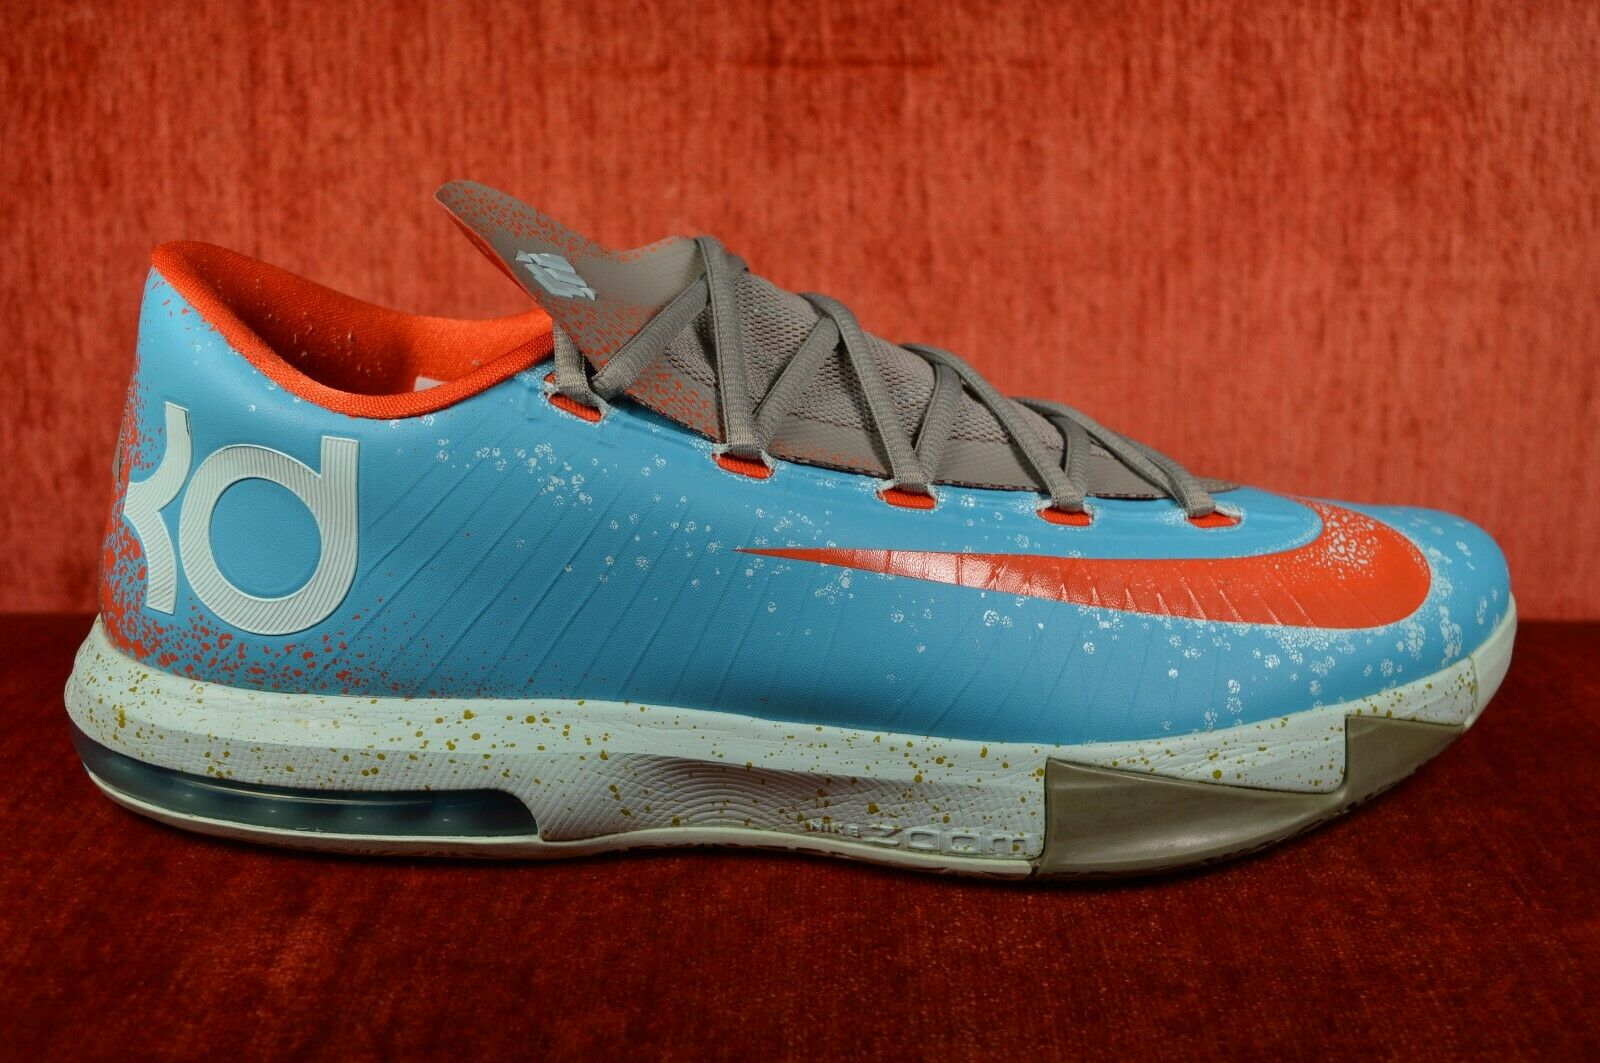 WORN ONCE Nike Kevin Durant KD 6 VI Size 13 Maryland bluee Crab Gamma 599424-400